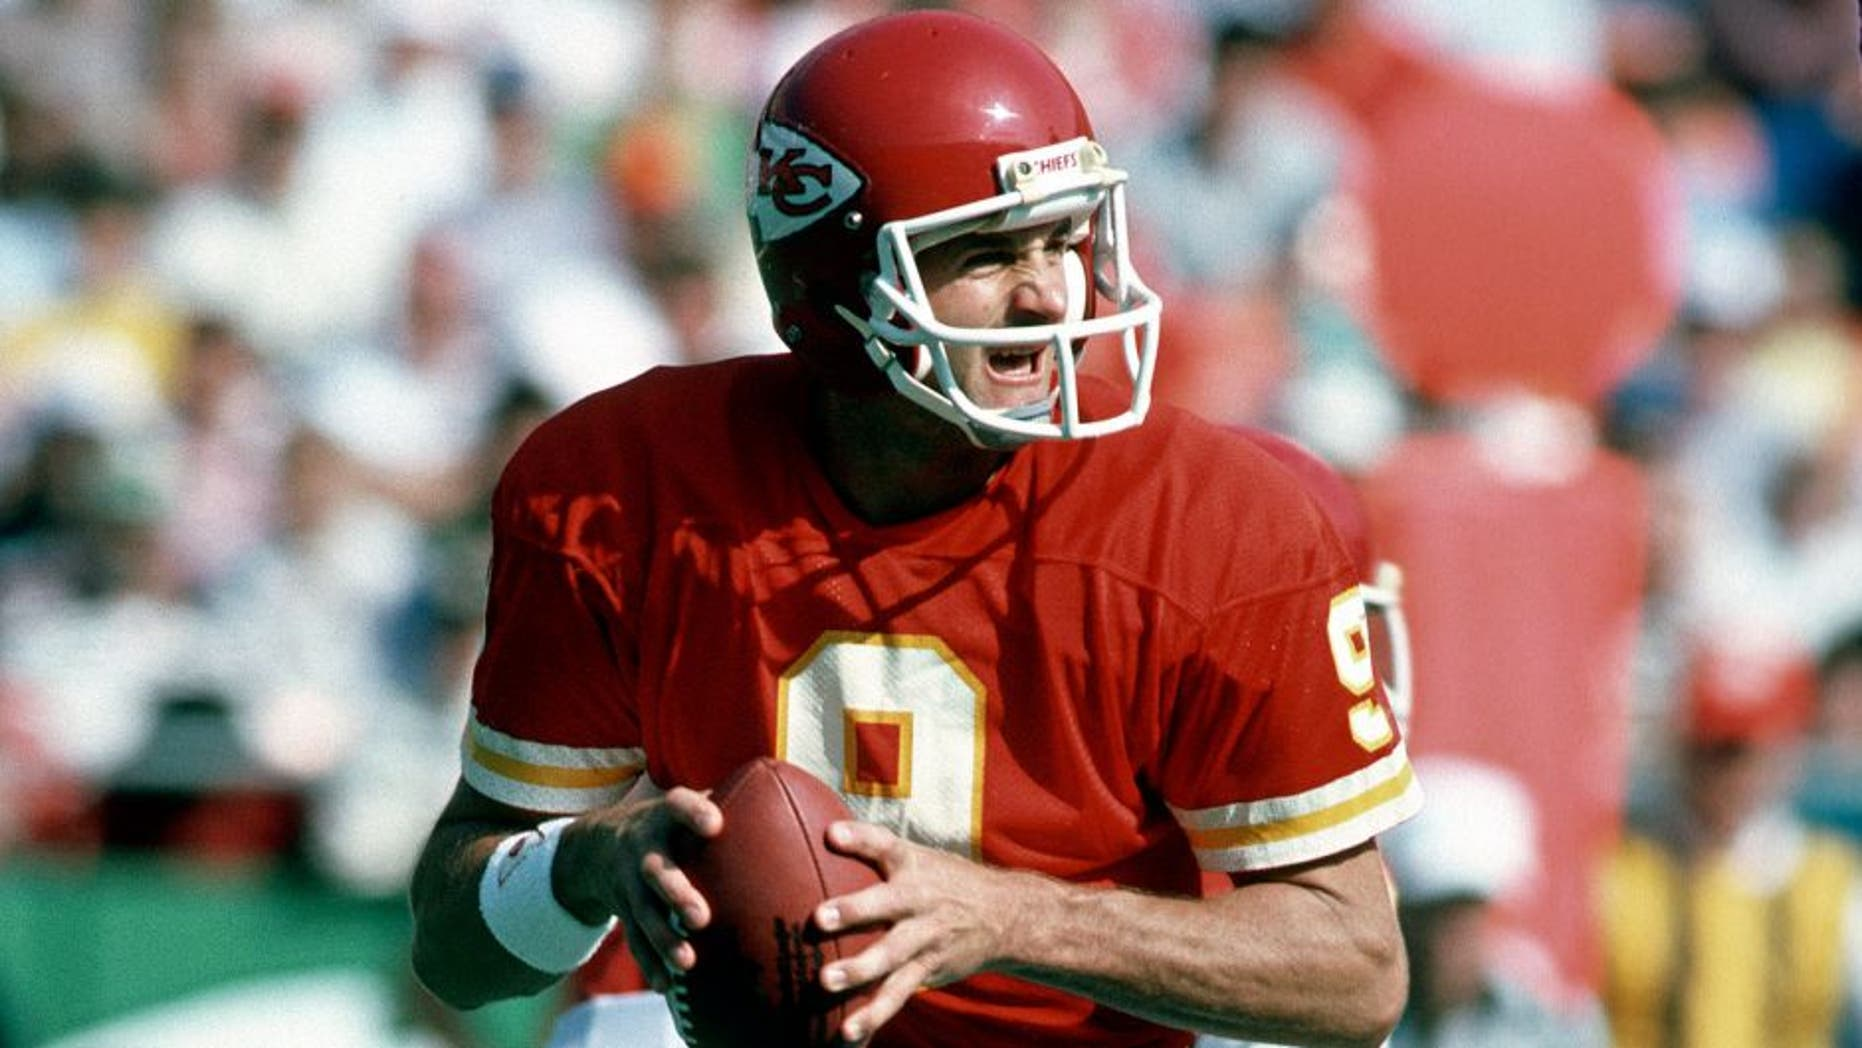 KANSAS CITY, MO - OCTOBER 27: Bill Kenney #9 of the Kansas City Chiefs drops back to pass against the Denver Broncos during an NFL football game October 27, 1985 at Arrowhead Stadium in Kansas City, Missouri. Kenney played for the Chiefs from 1980-88. (Photo by Focus on Sport/Getty Images)